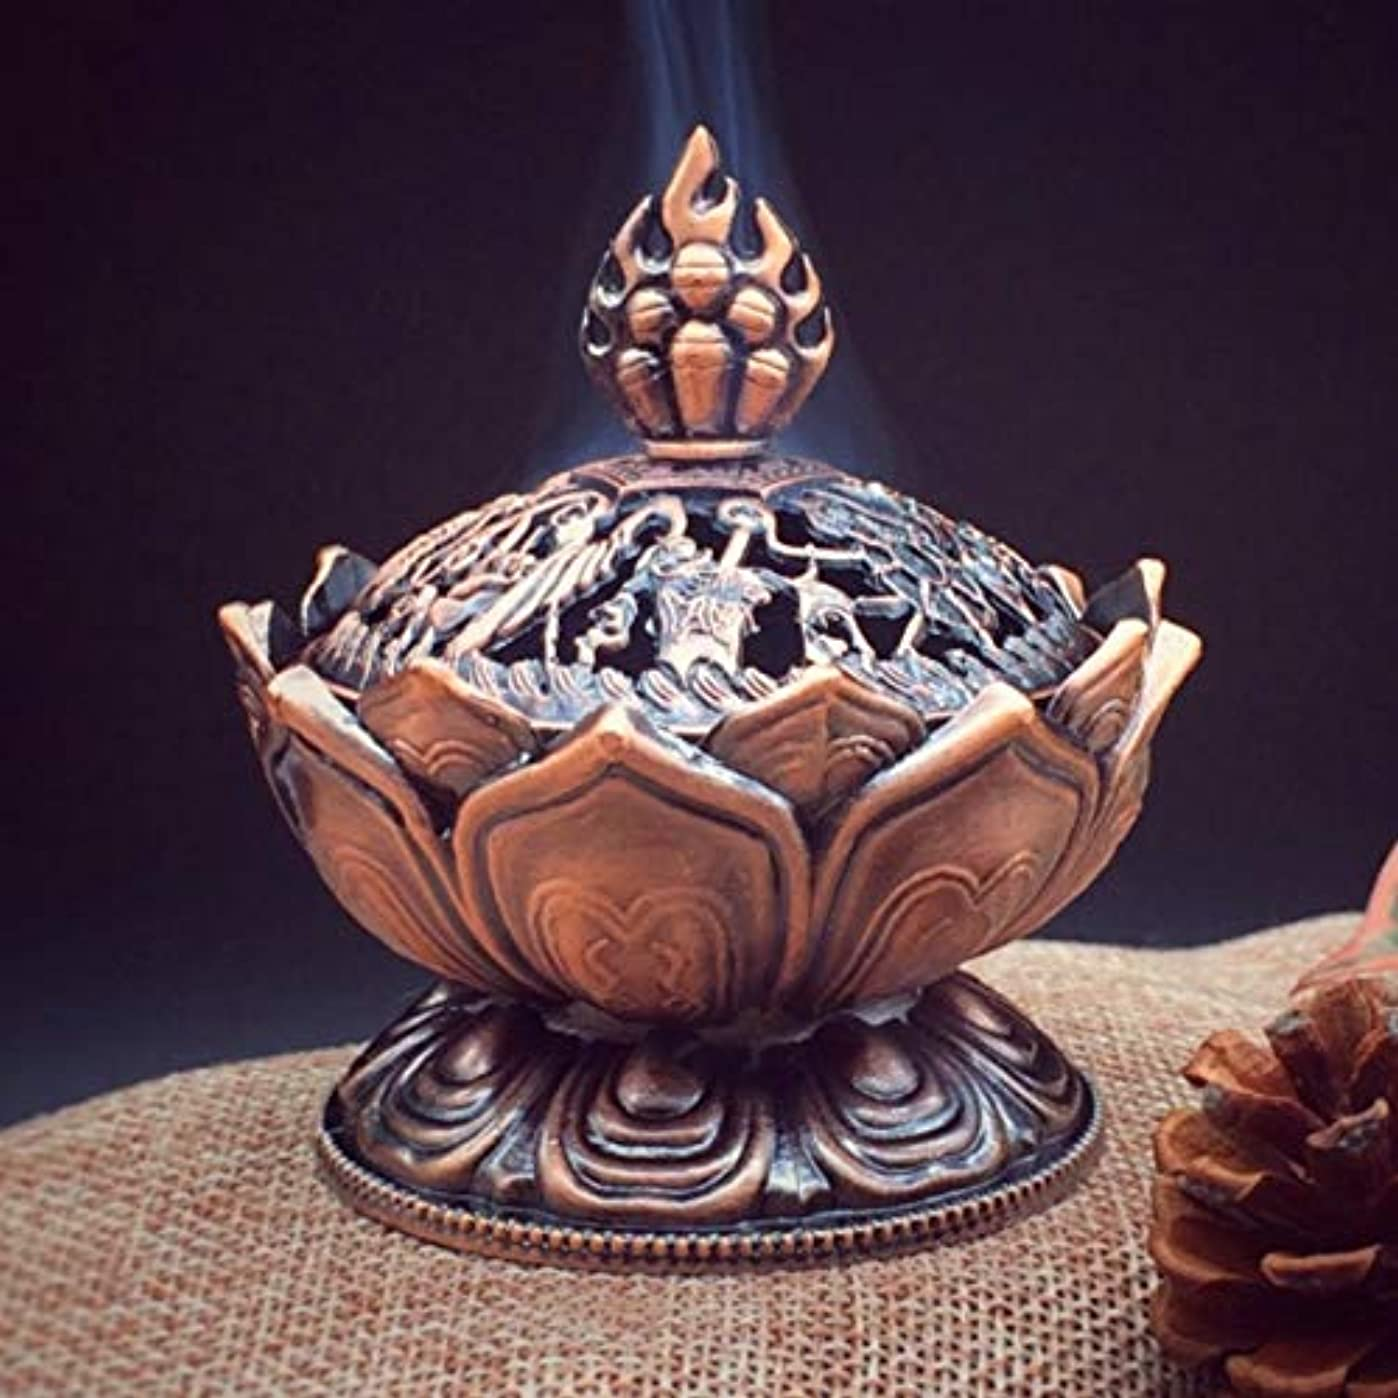 明らかに記念品許可するHoly Tibetan Lotus Designed Incense Burner Zinc Alloy Bronze Mini Incense Burner Incensory Metal Craft Home Decor